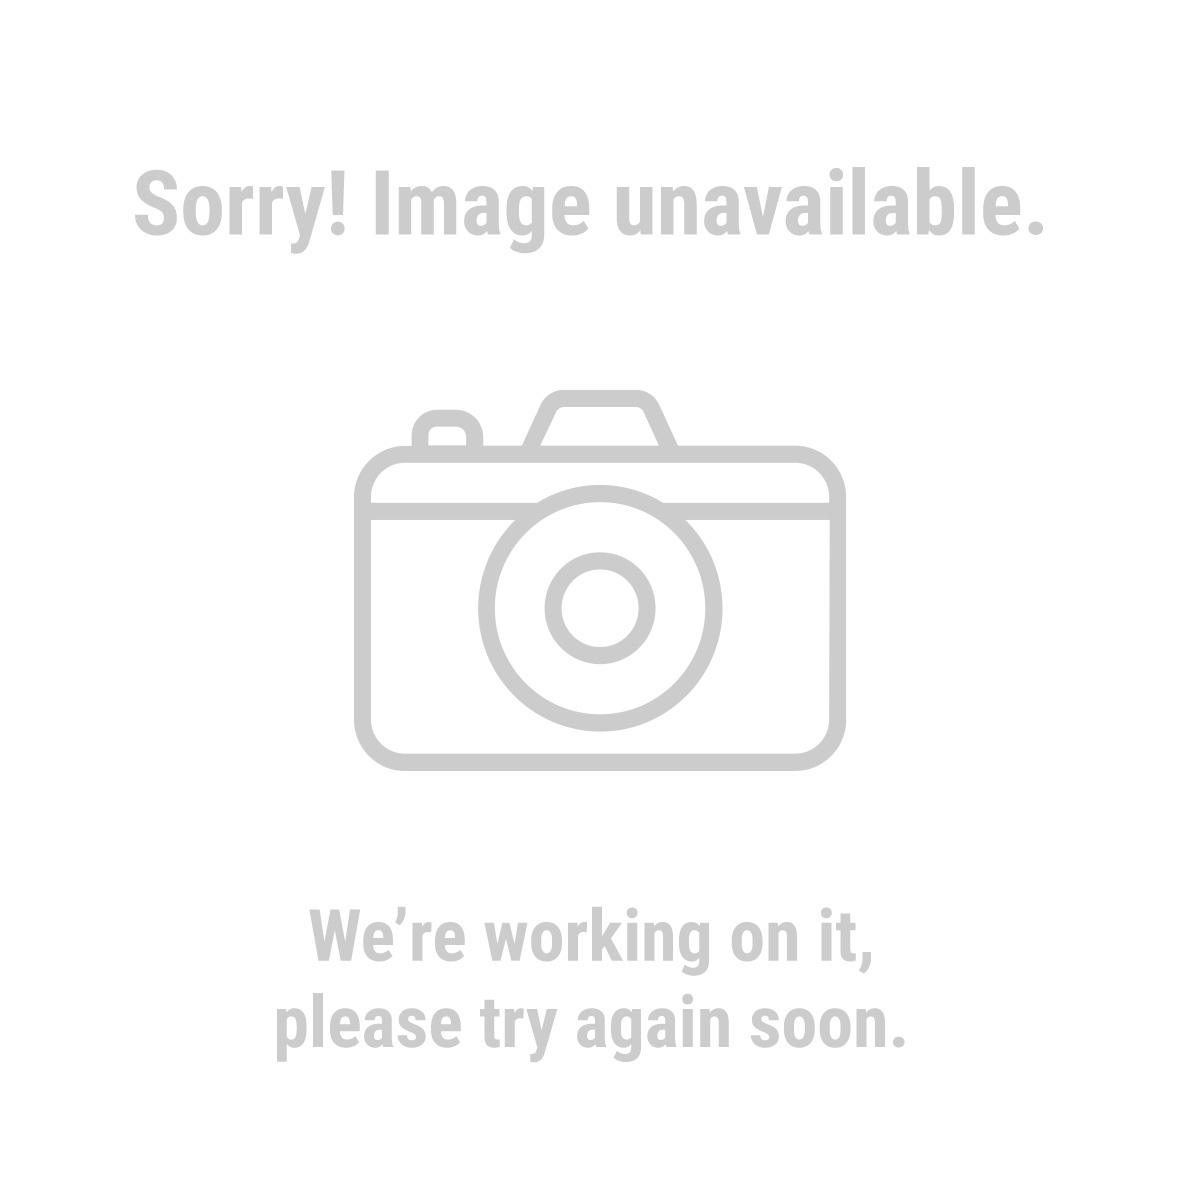 Pittsburgh® Automotive 92349 12 Volt 1/2 In. Emergency Impact Wrench